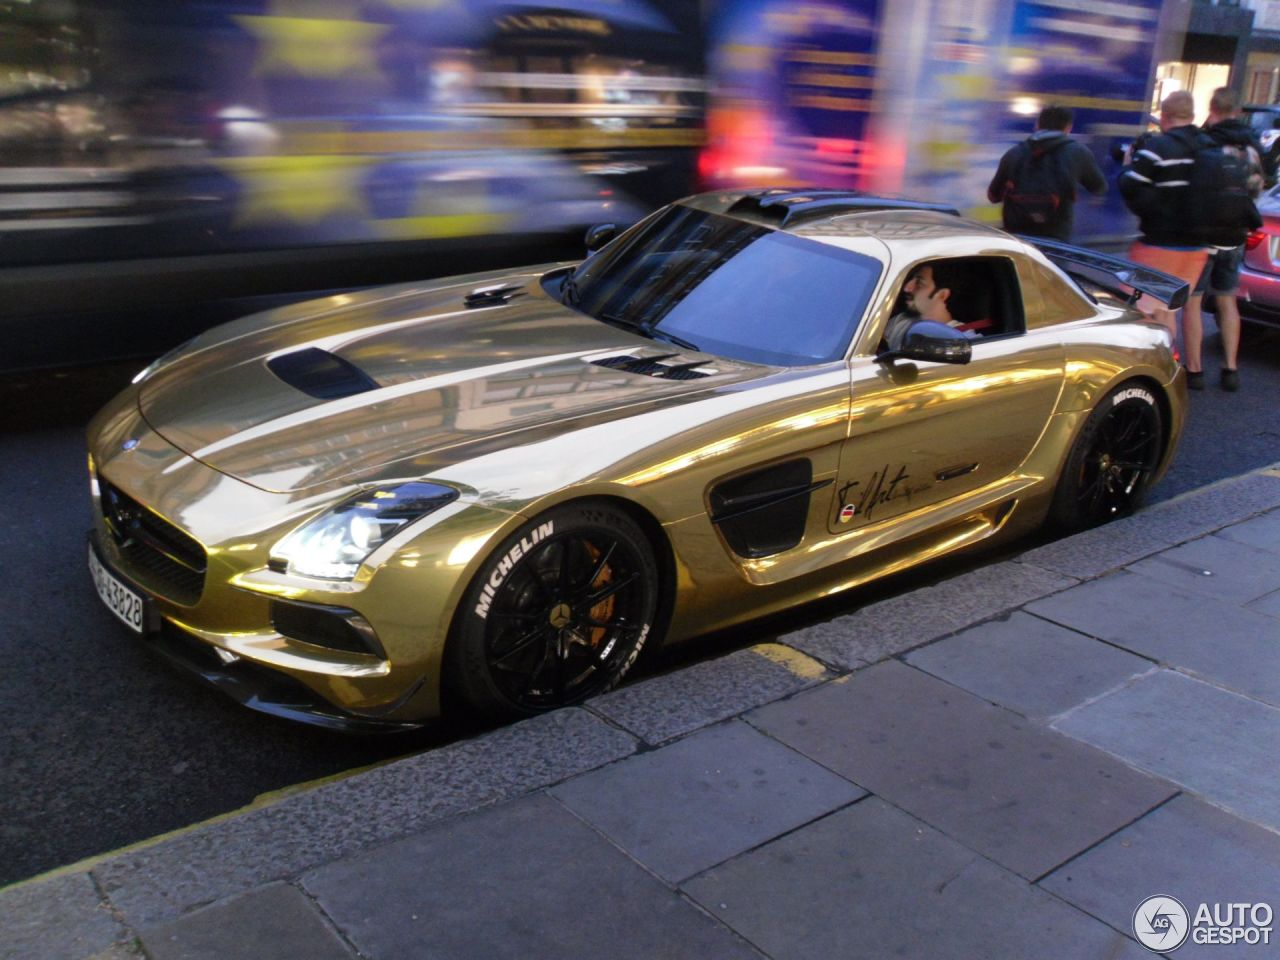 Mercedes sls amg black series price autos post for Mercedes benz sls price